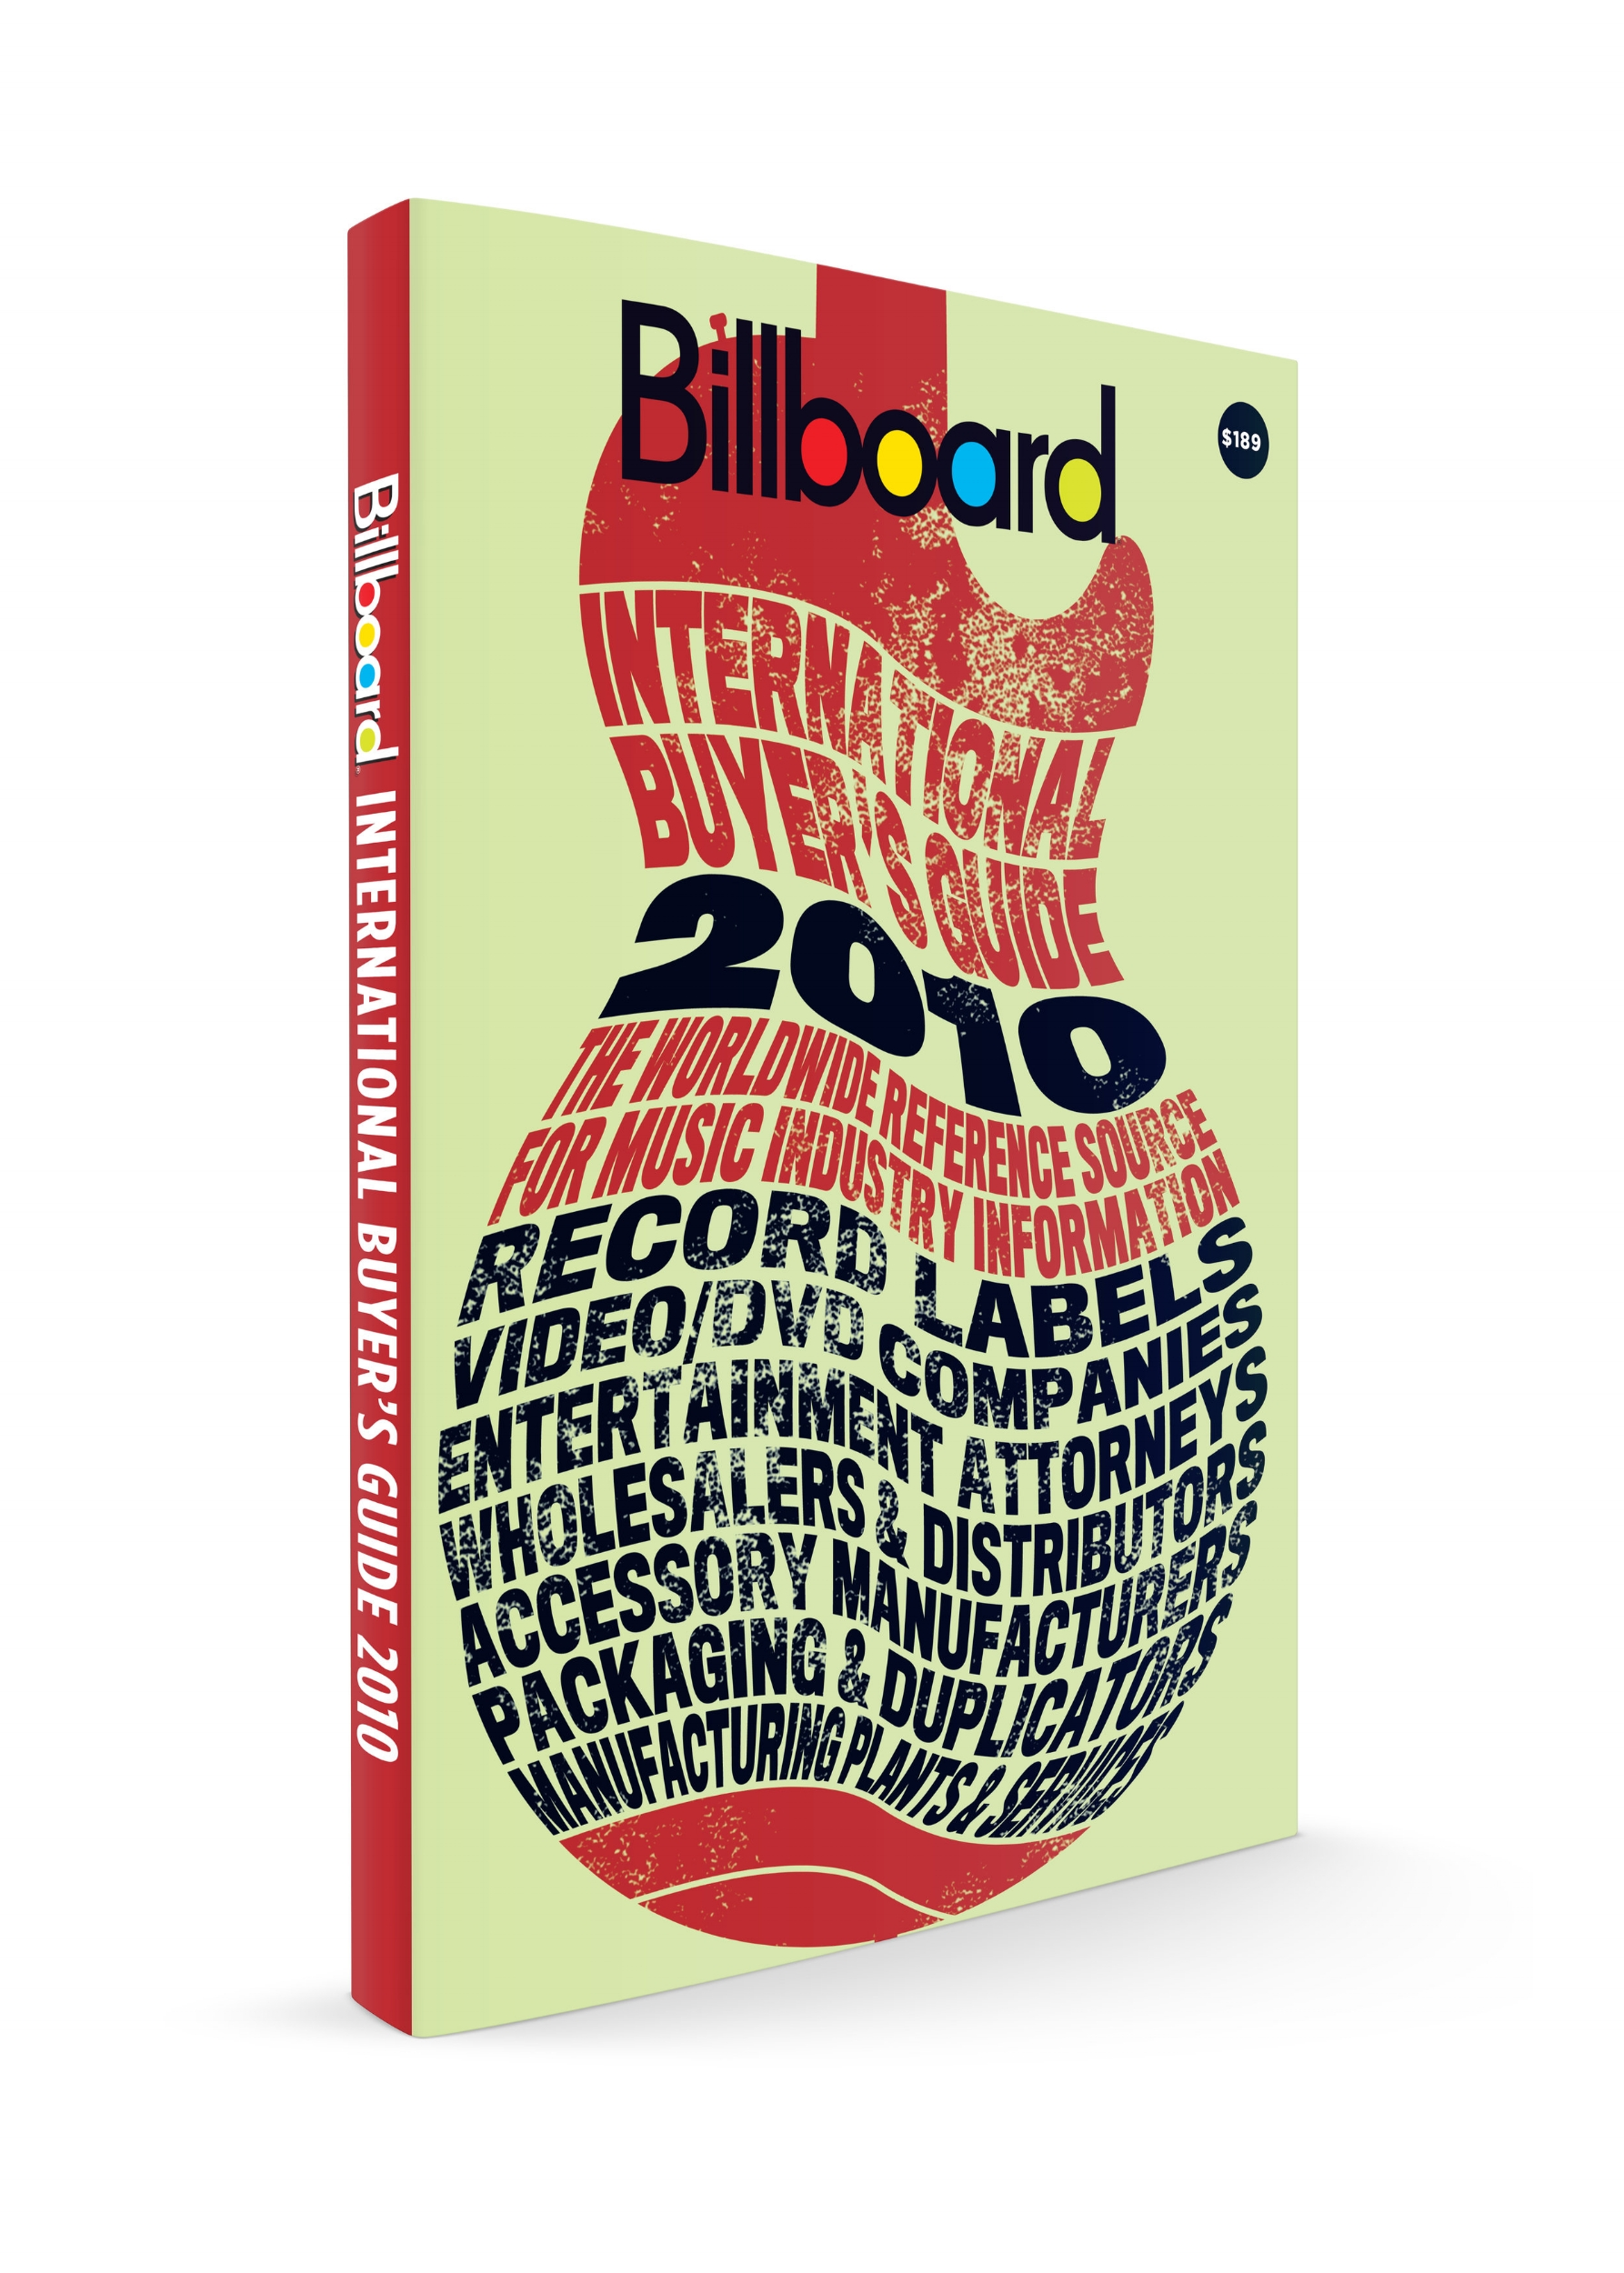 International Buyer's Guide published by Billboard Magazine